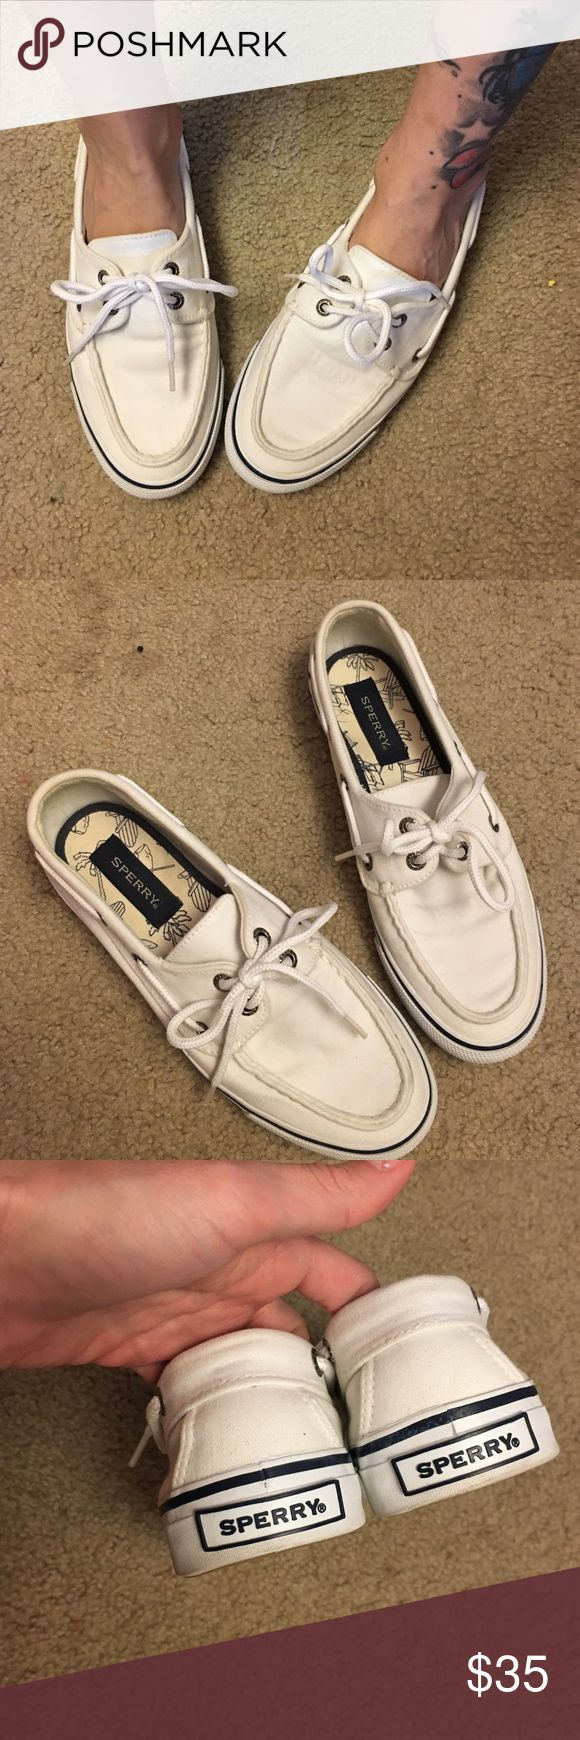 Like new Sperry top-siders shoes Super cute like new worn twice size 8 white Sperry Top-Sider Shoes Flats & Loafers